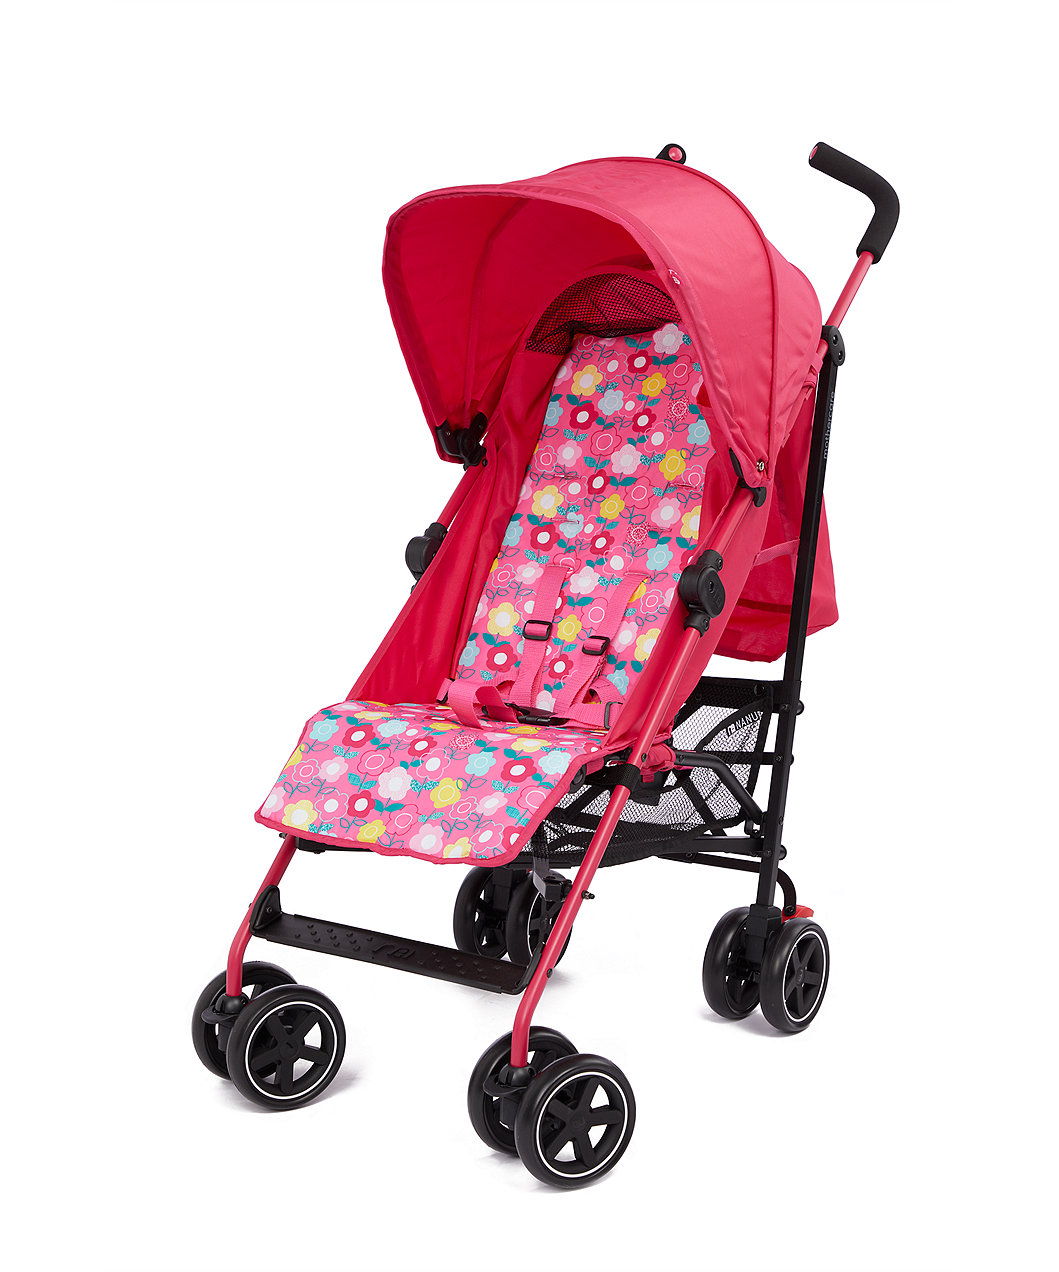 Pink Mothercare Compact Cosytoe